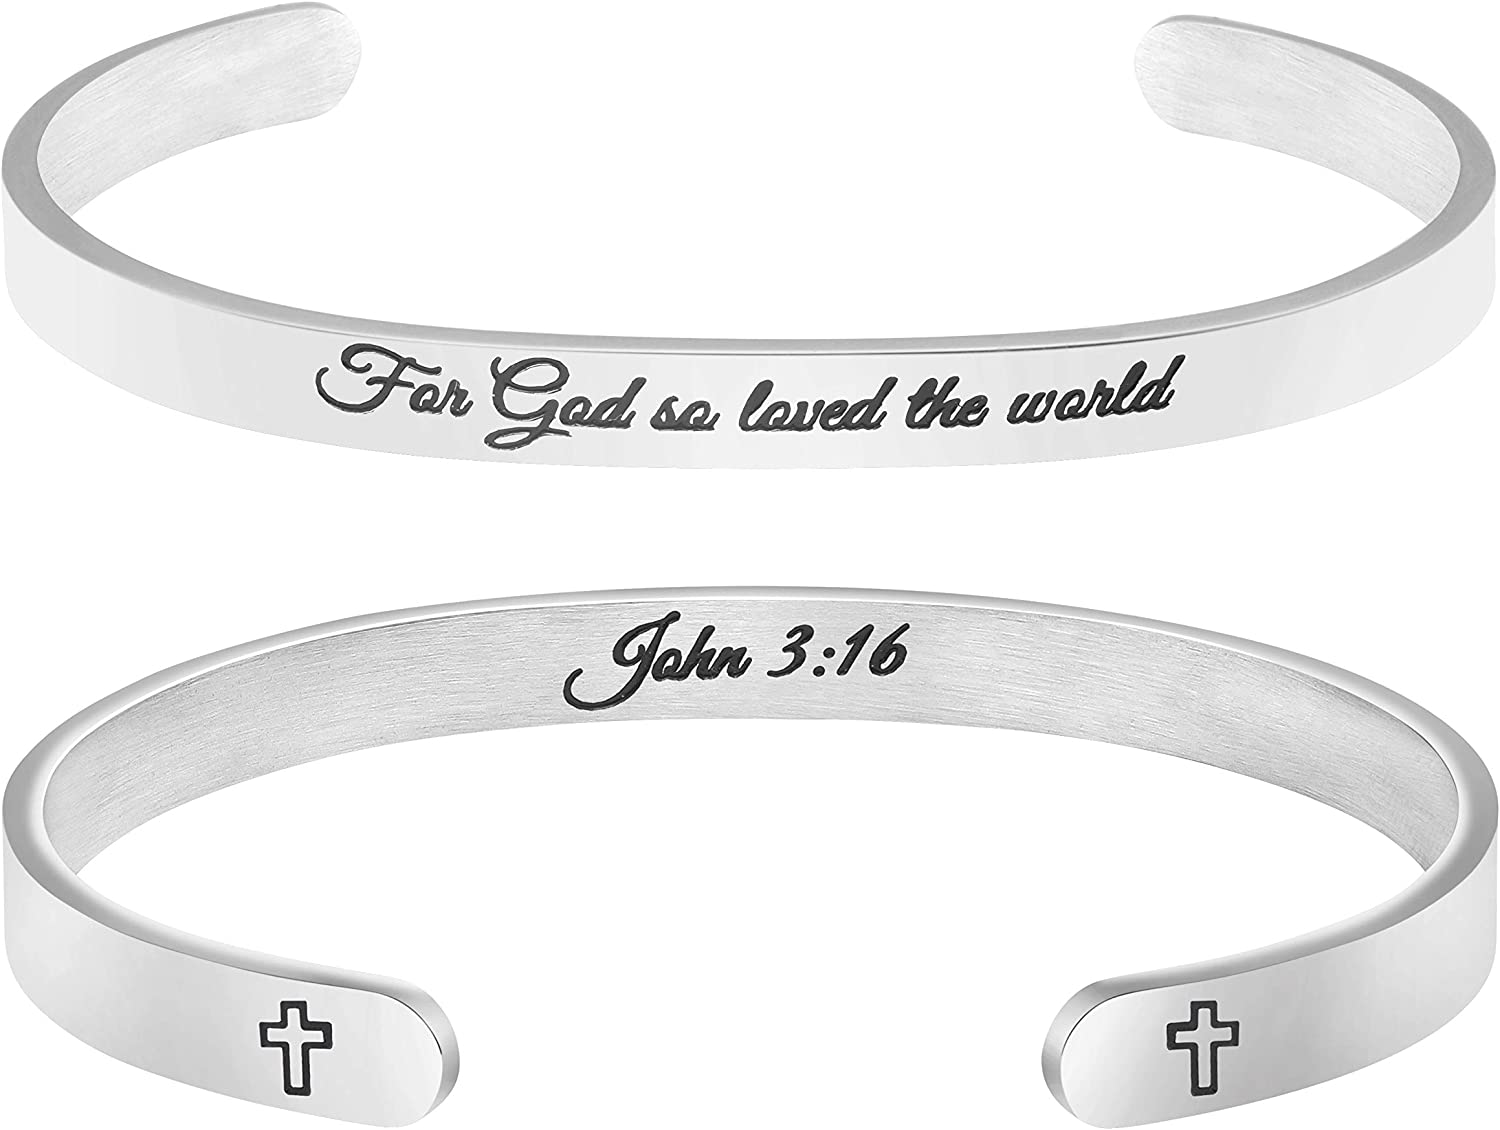 Christian Bracelets for Women Inspirational Gifts Bible Verse Religious Faith Jewelry Cuff Bracelet Mothers Day Christmas Birthday Jewelry for Her Mother Daughter